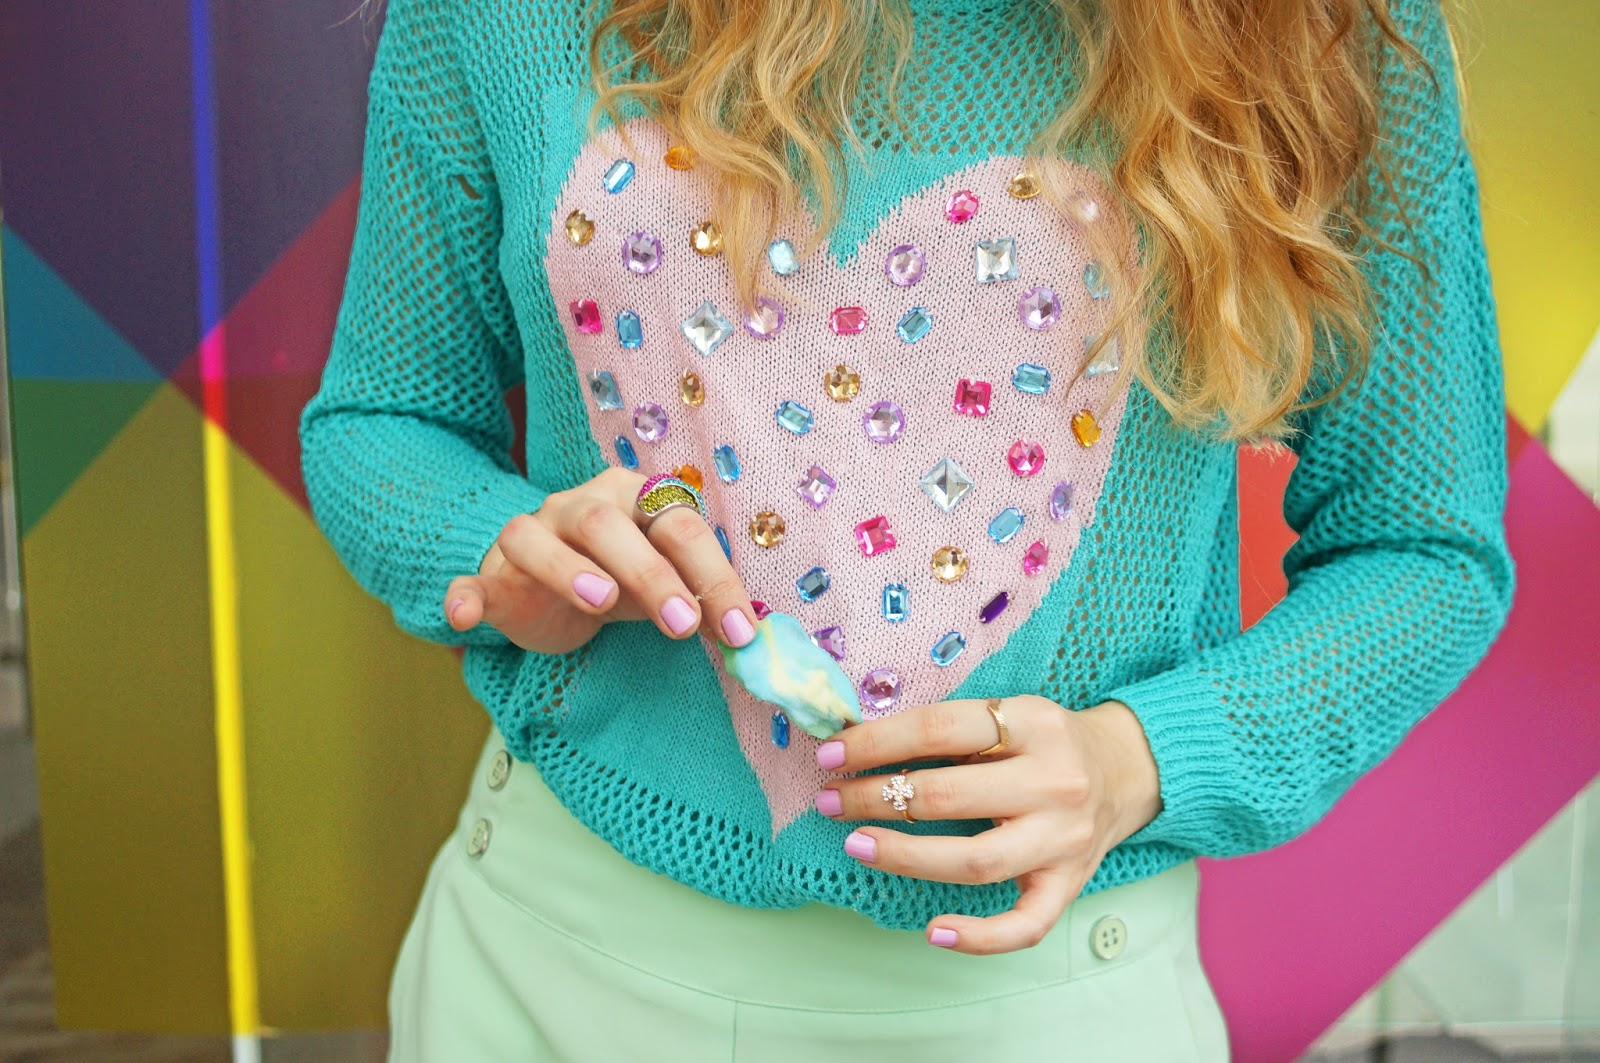 This heart sweater is all kinds of adorable!